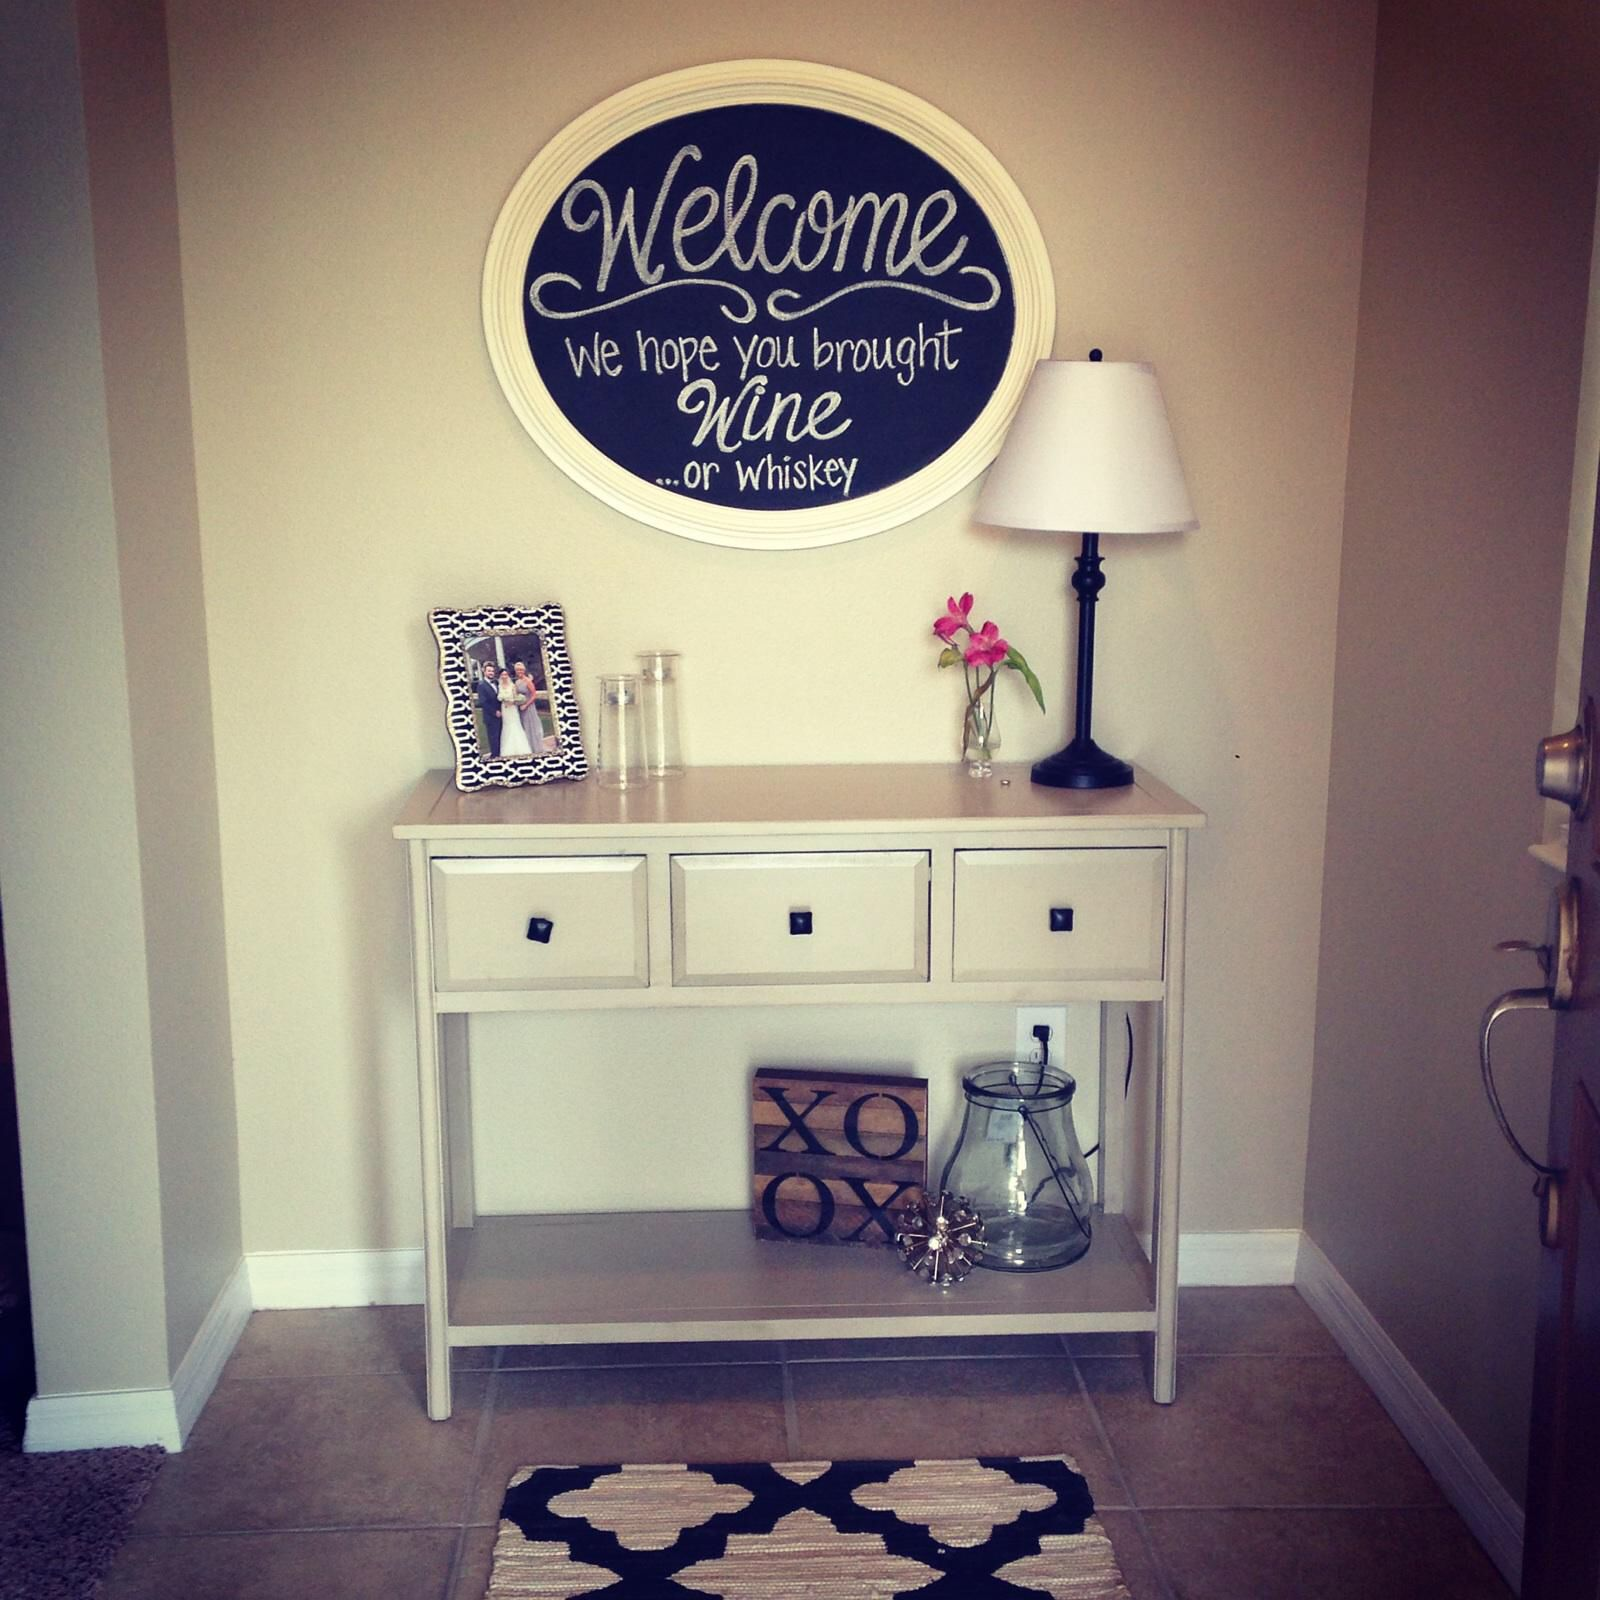 Check out our new entryway!